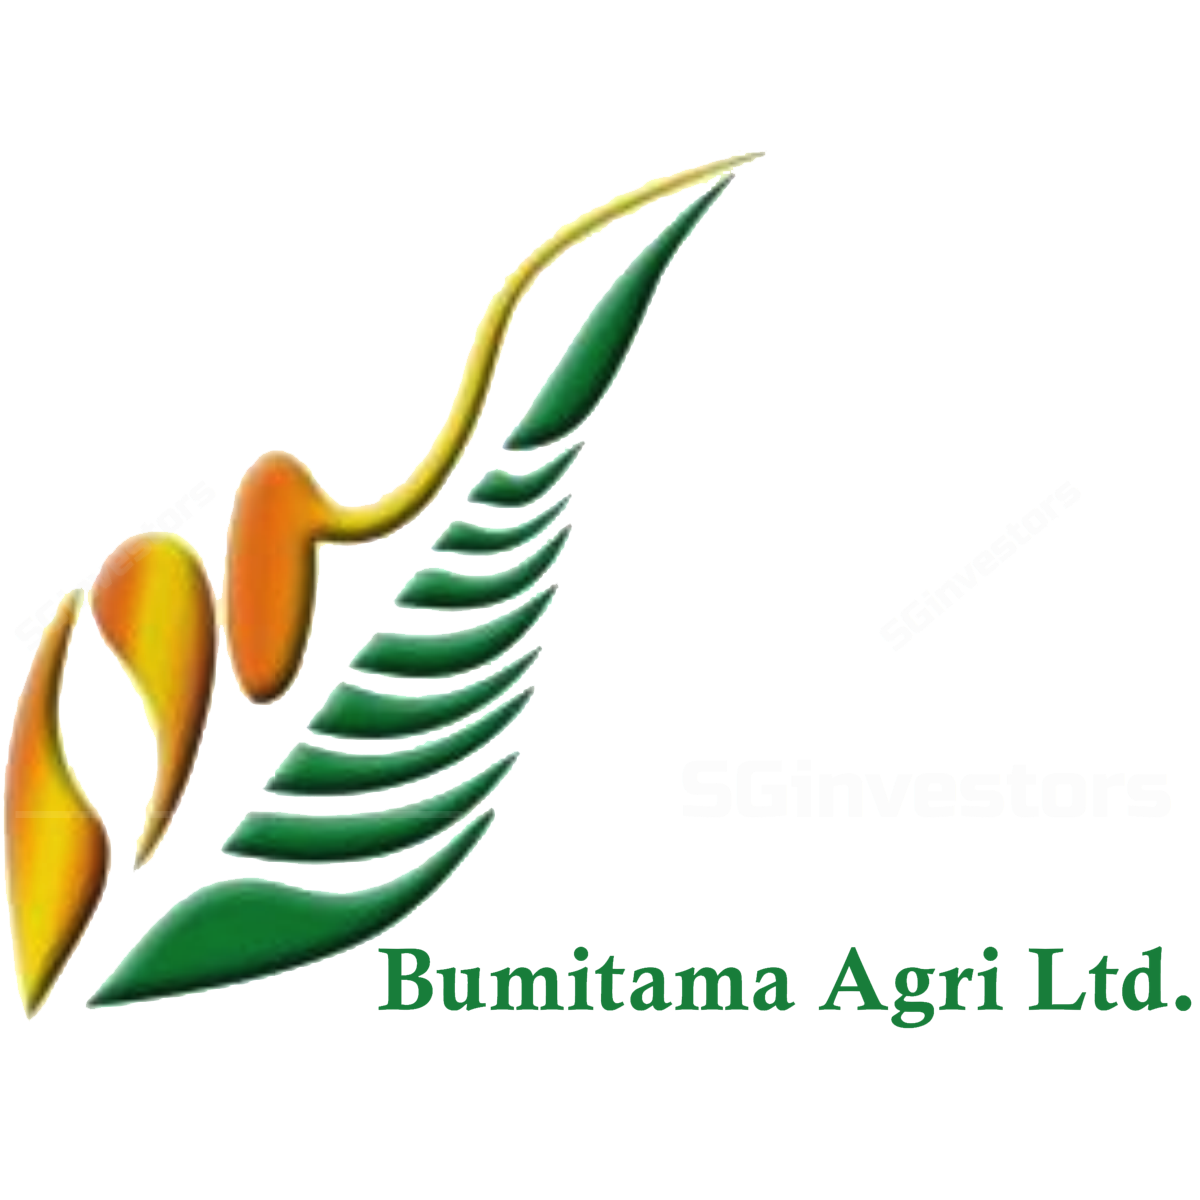 Bumitama Agri - DBS Vickers 2017-02-24: Consistent earnings growth delivery